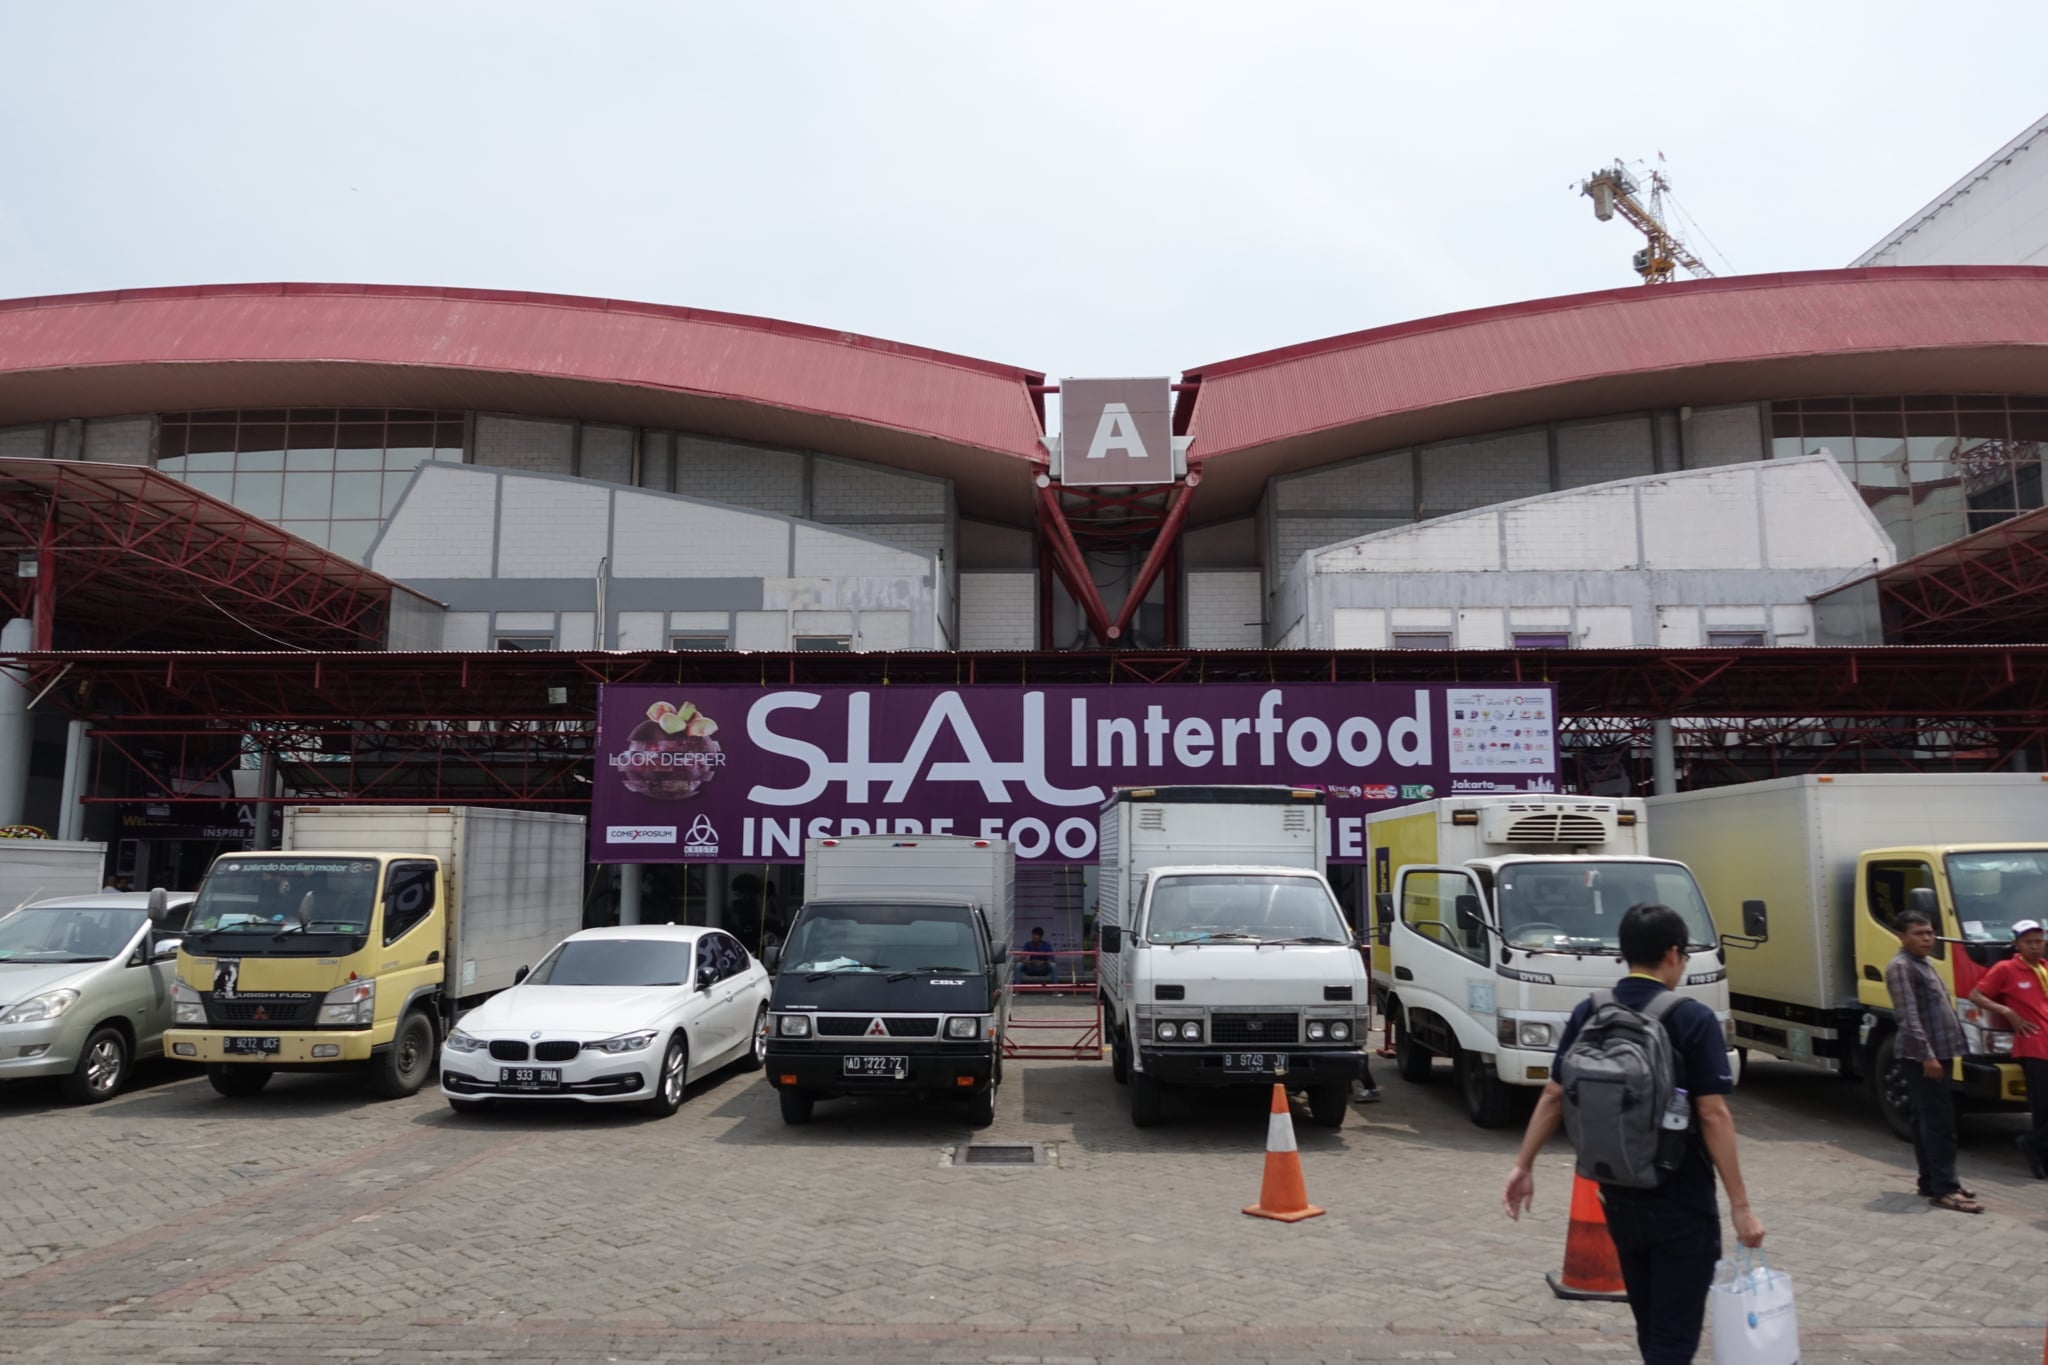 Participated in SIAL Interfood 2017